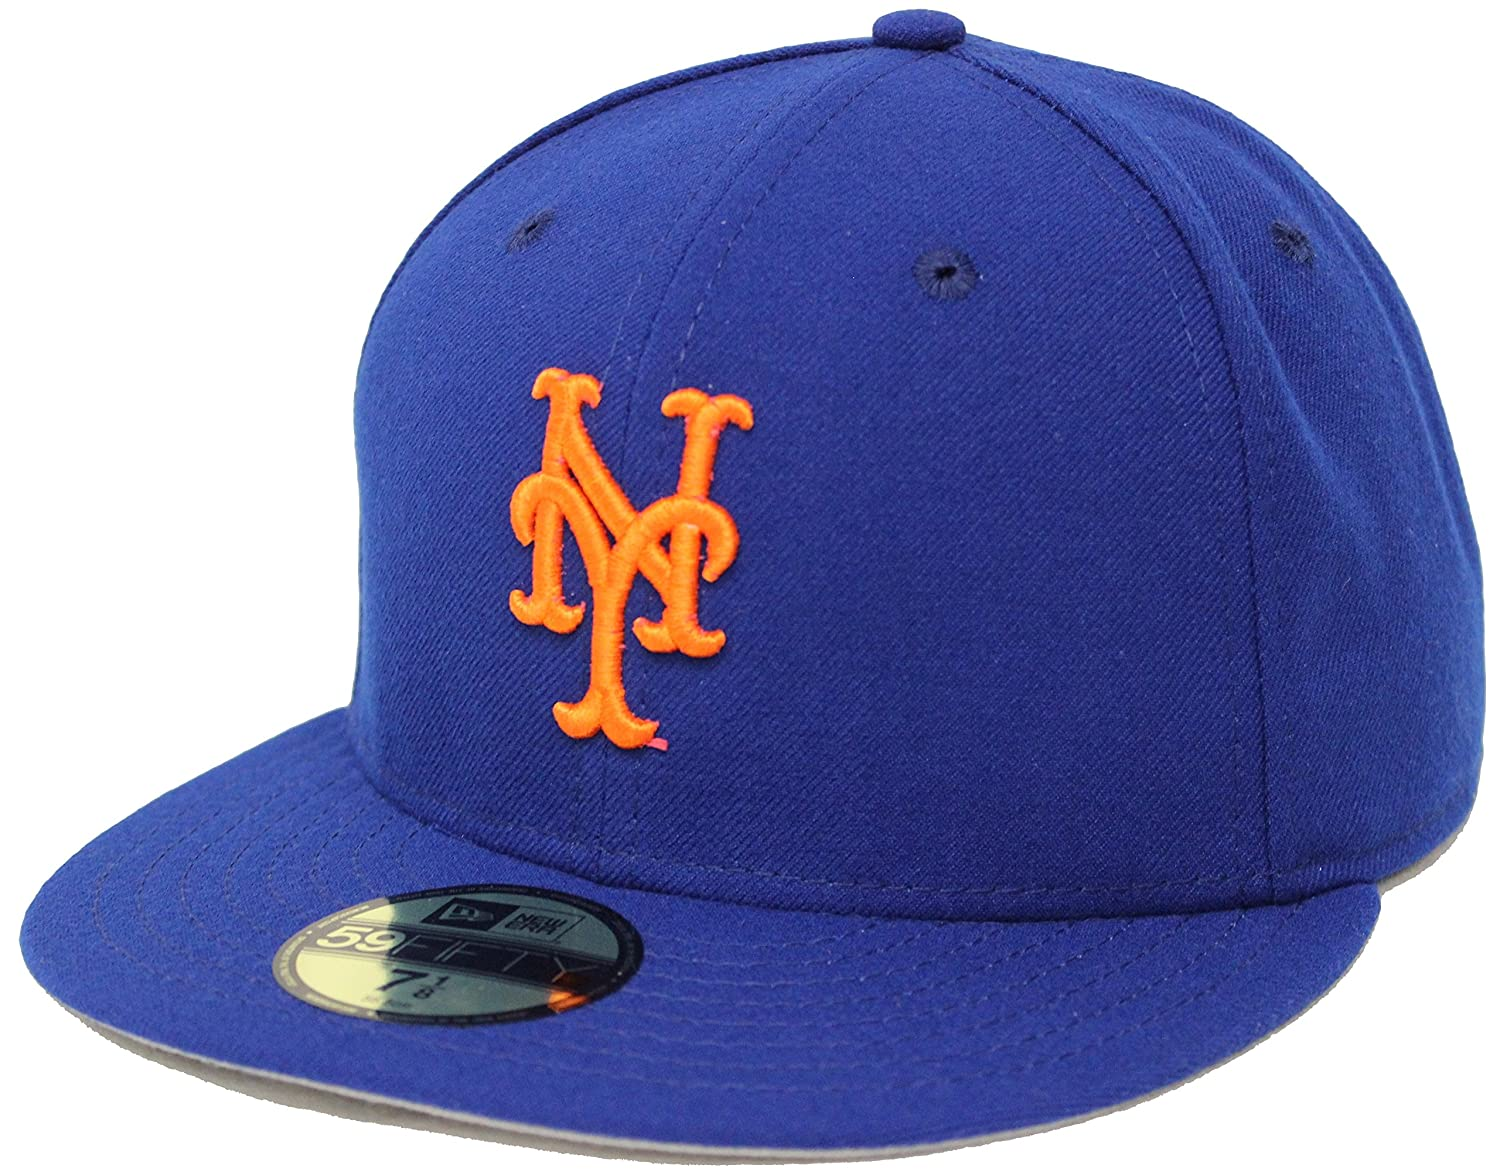 quality design 77692 98e17 New Era 59Fifty On Field New York Mets Blue Fitted Cap at Amazon Men s  Clothing store